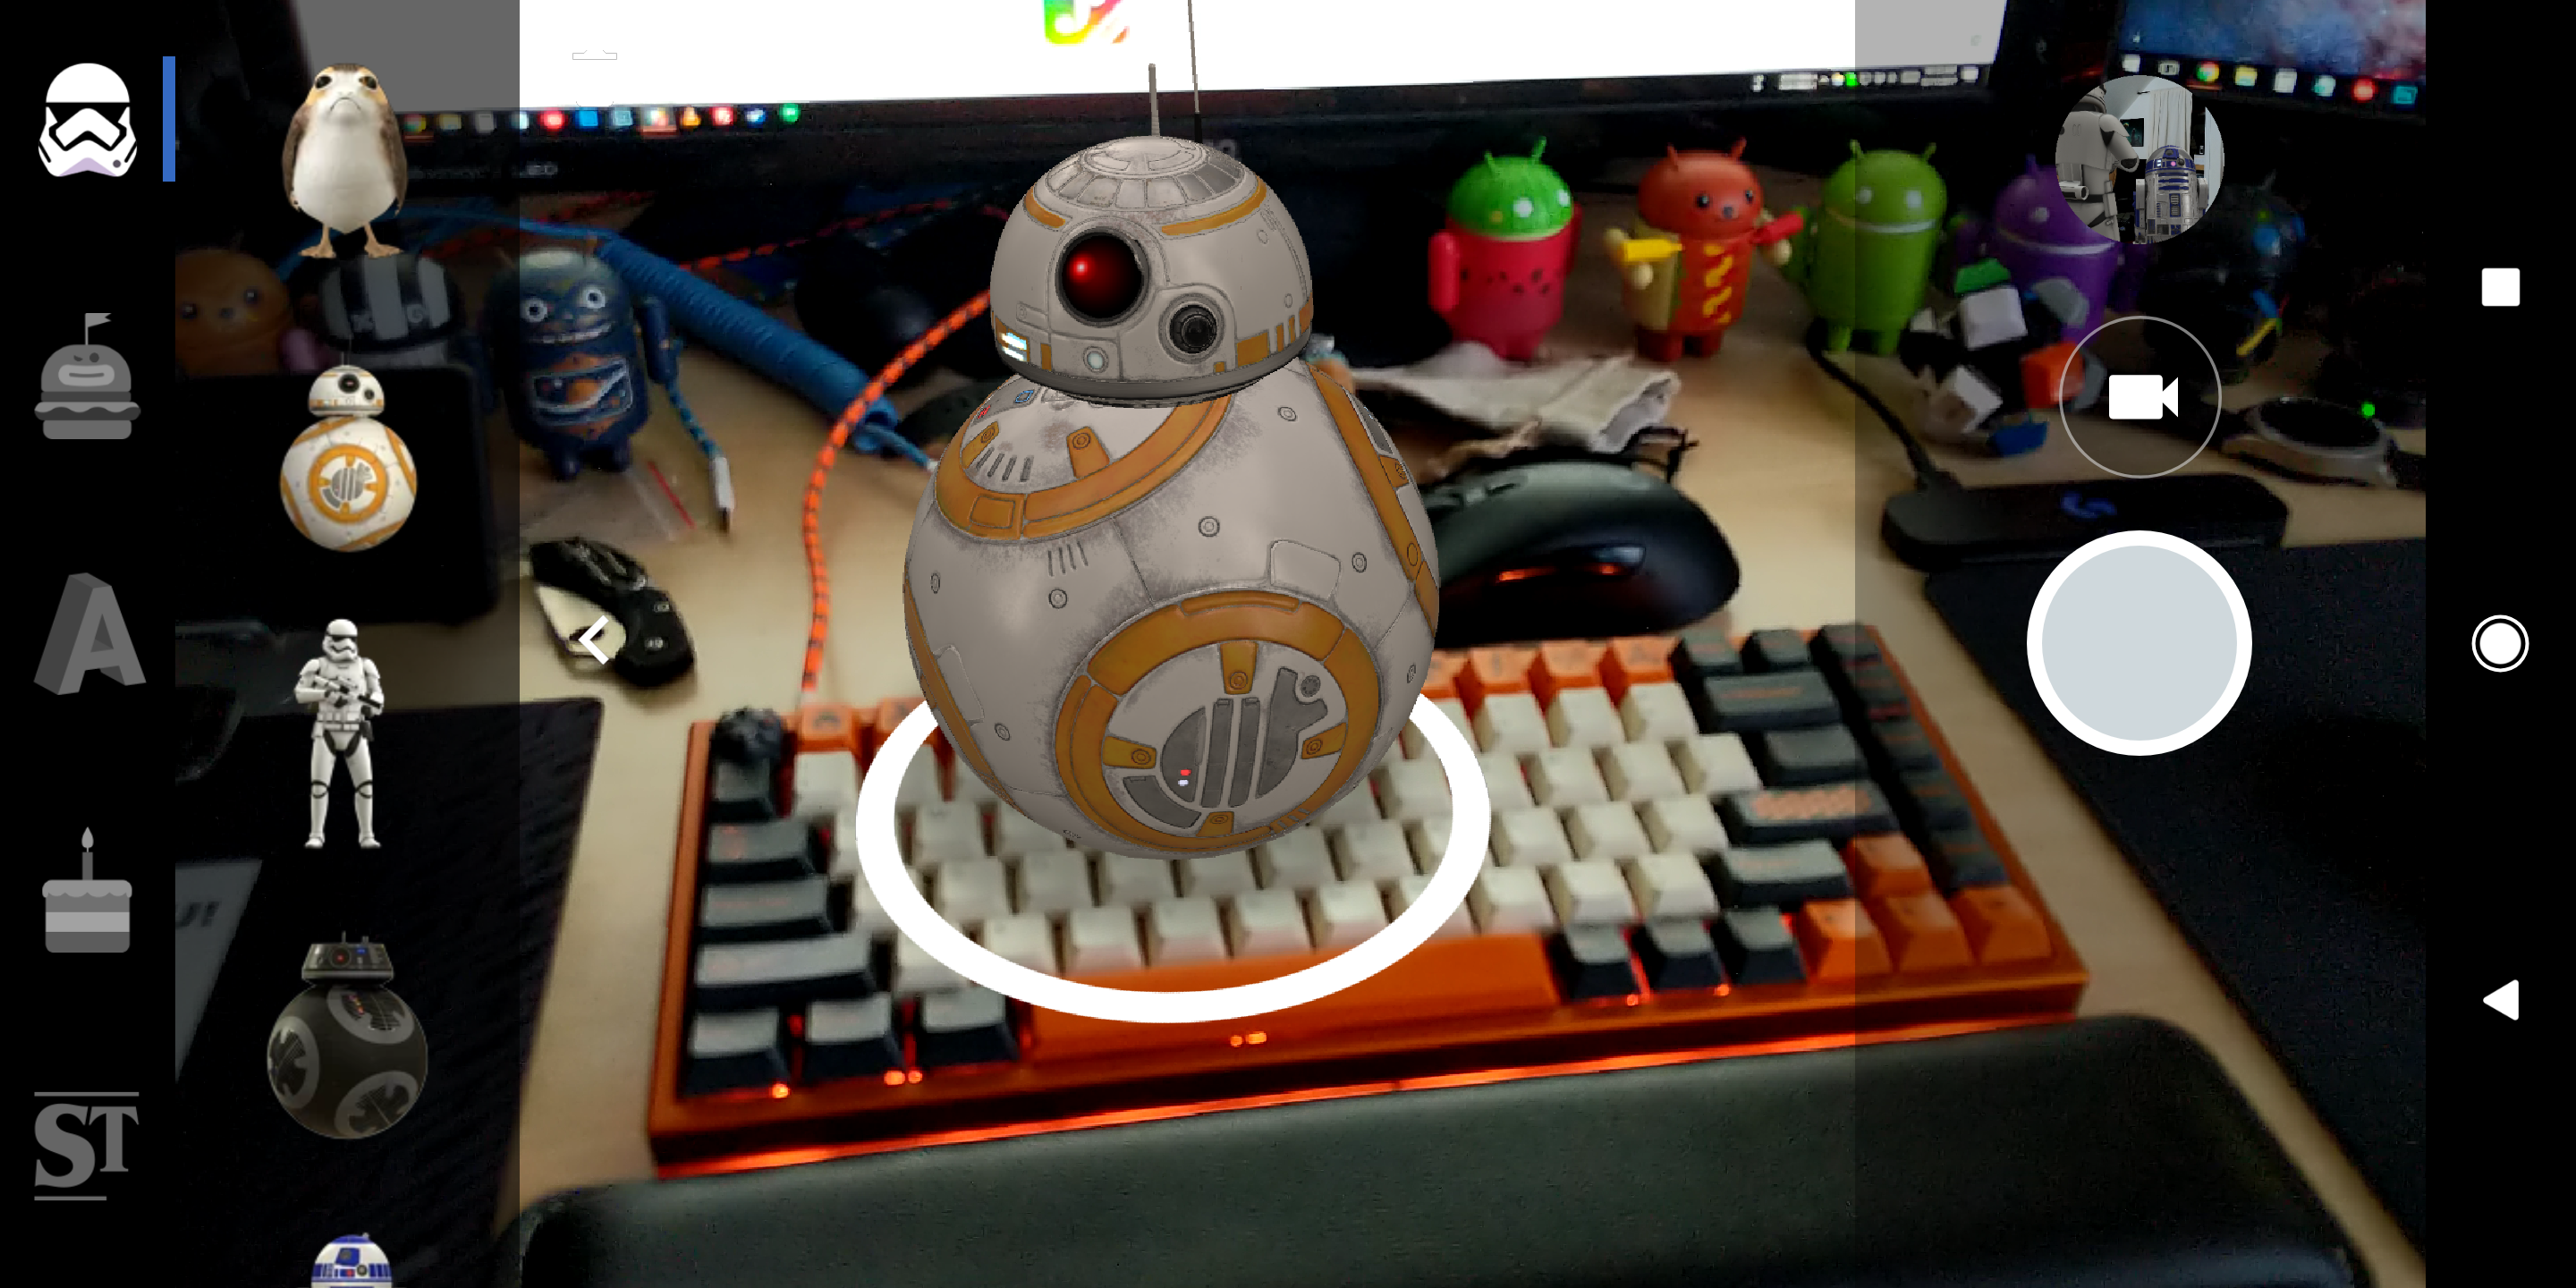 Google's AR Stickers are rolling out to Pixel devices [APK